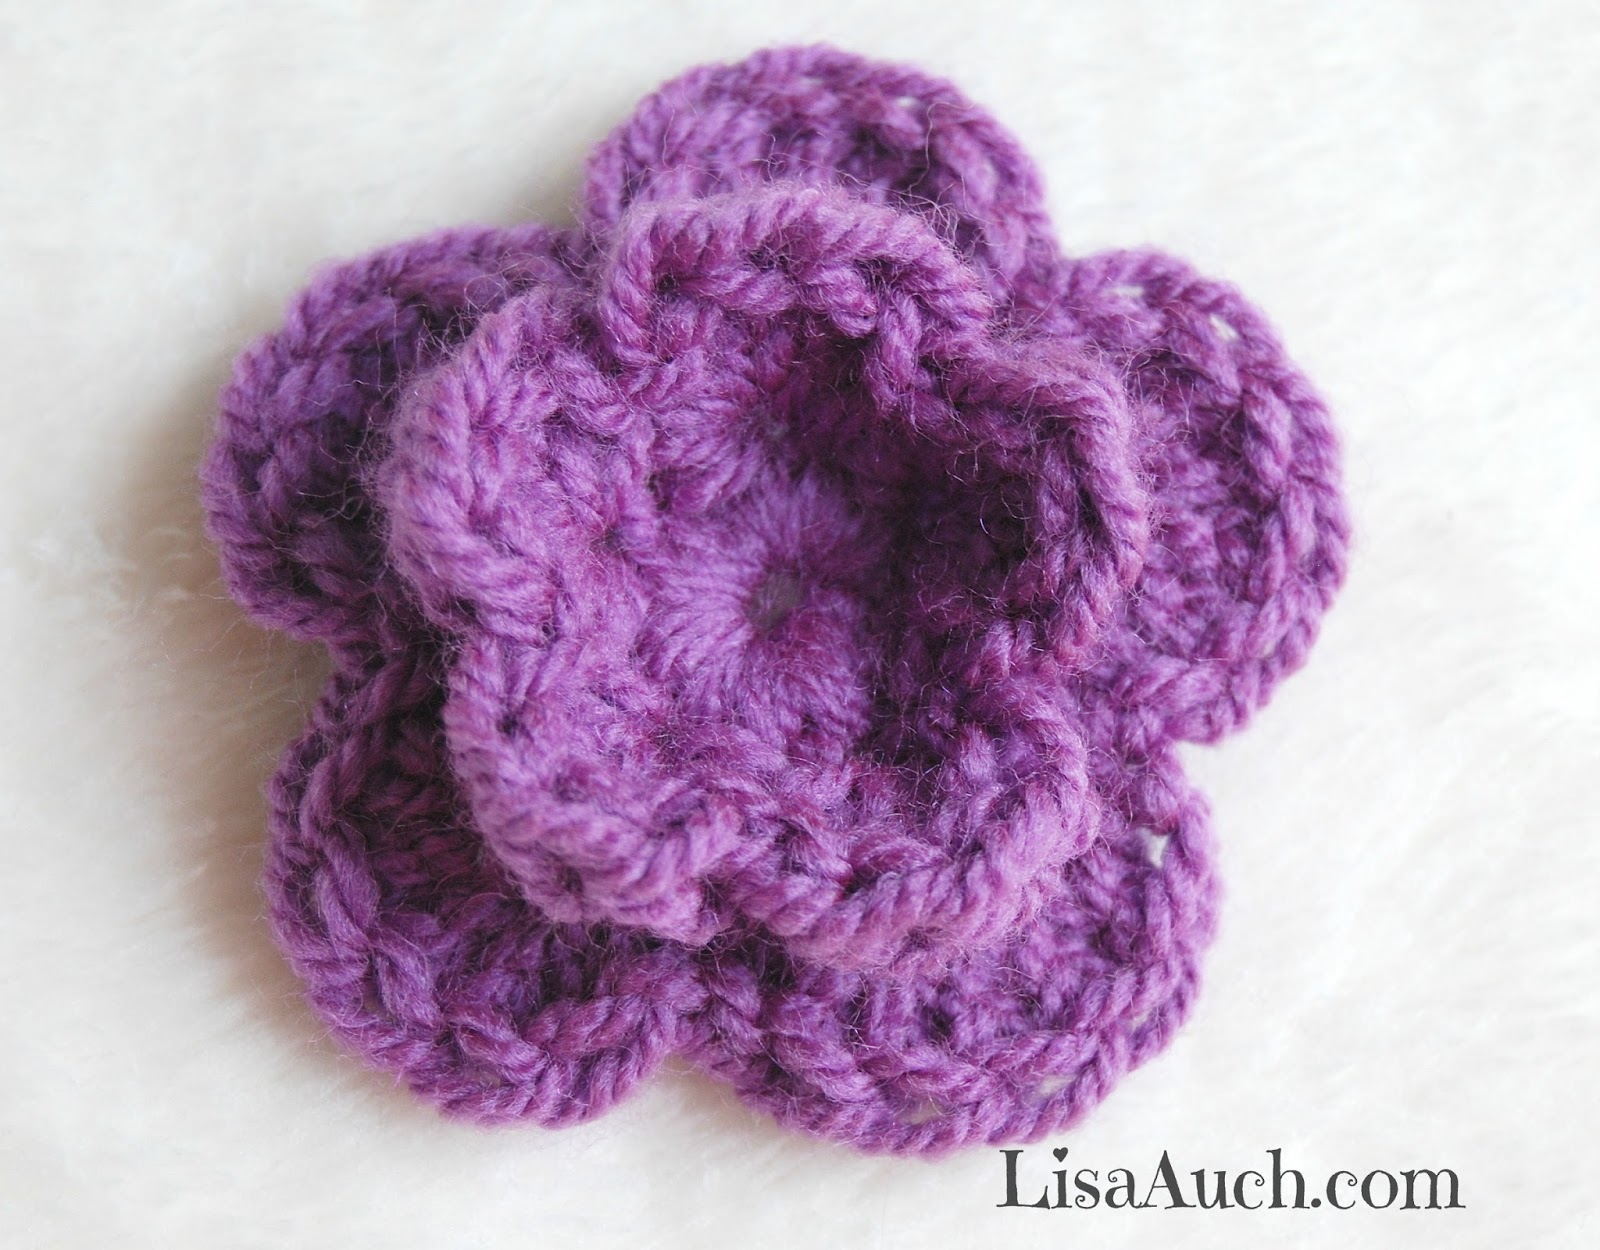 Basic Crochet Flower Patterns Free : How To Crochet a Small Double Layer 3d Flower in 8 Easy ...